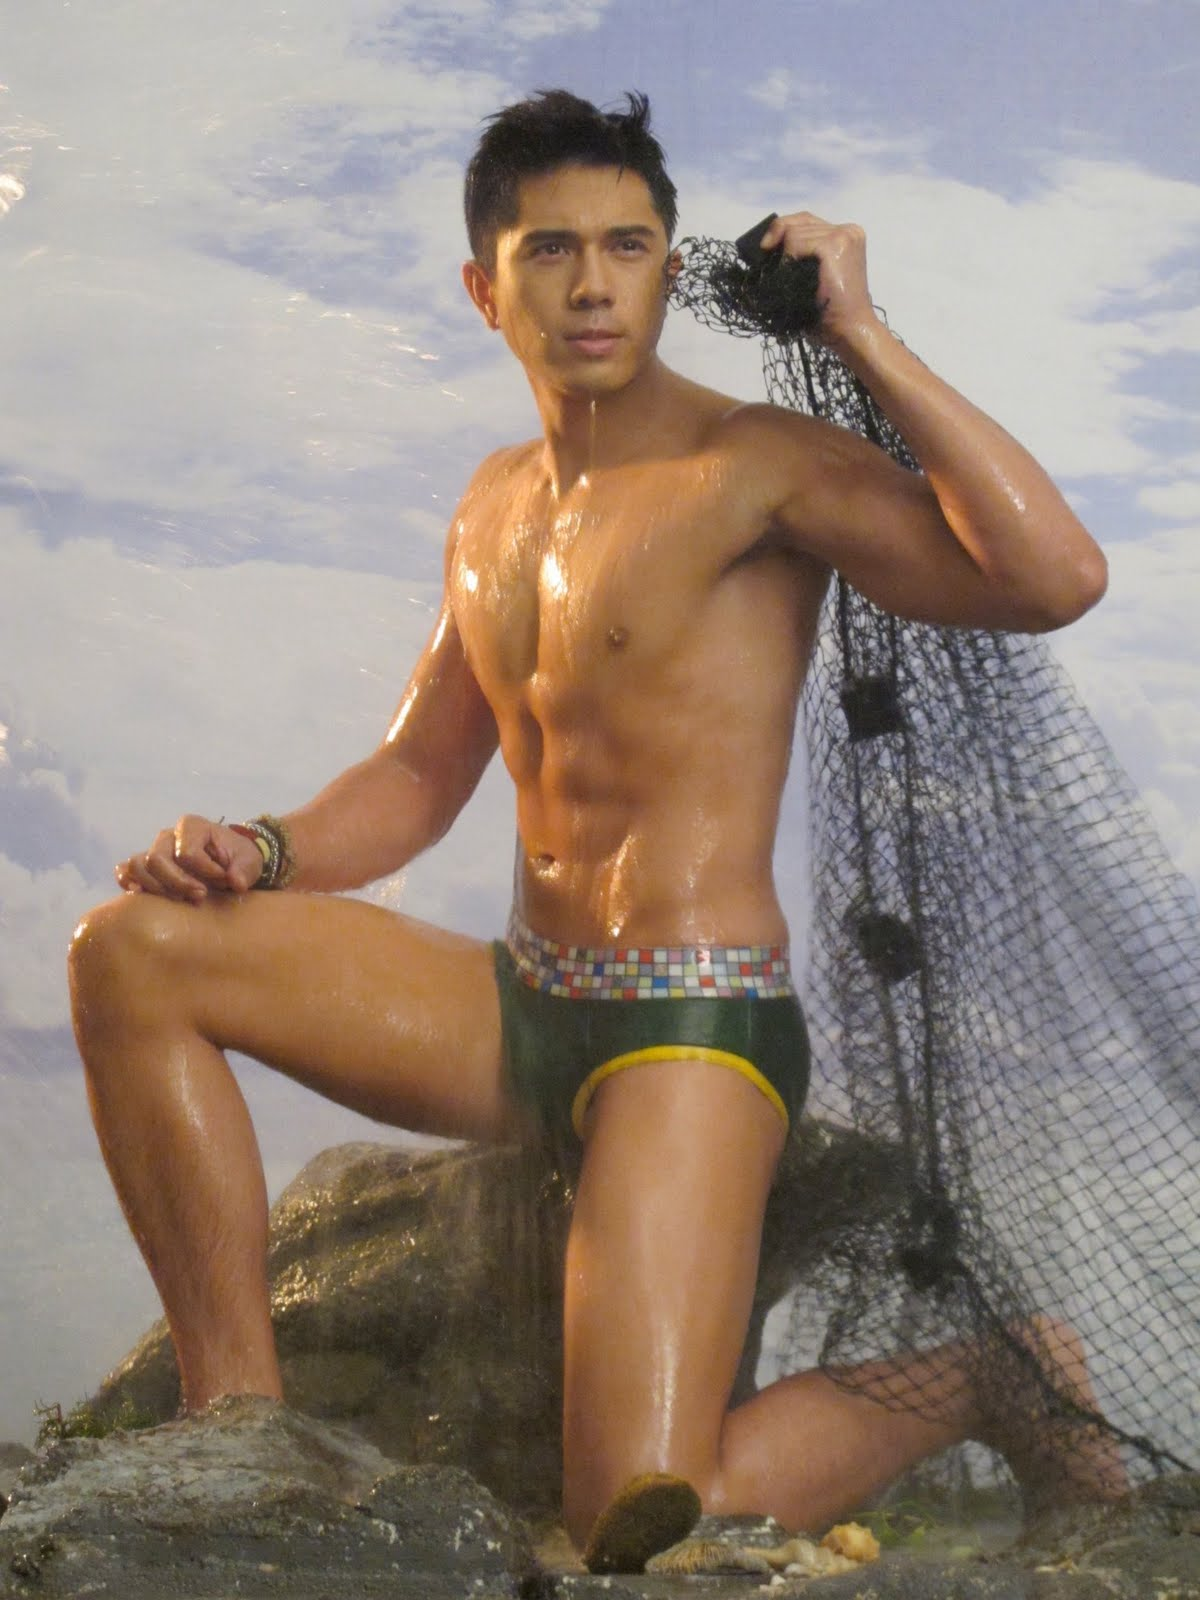 Paulo_Avelino_Hot http://www.mykiru.ph/2011/03/paulo-avelino-scandal-photo-heats-up.html